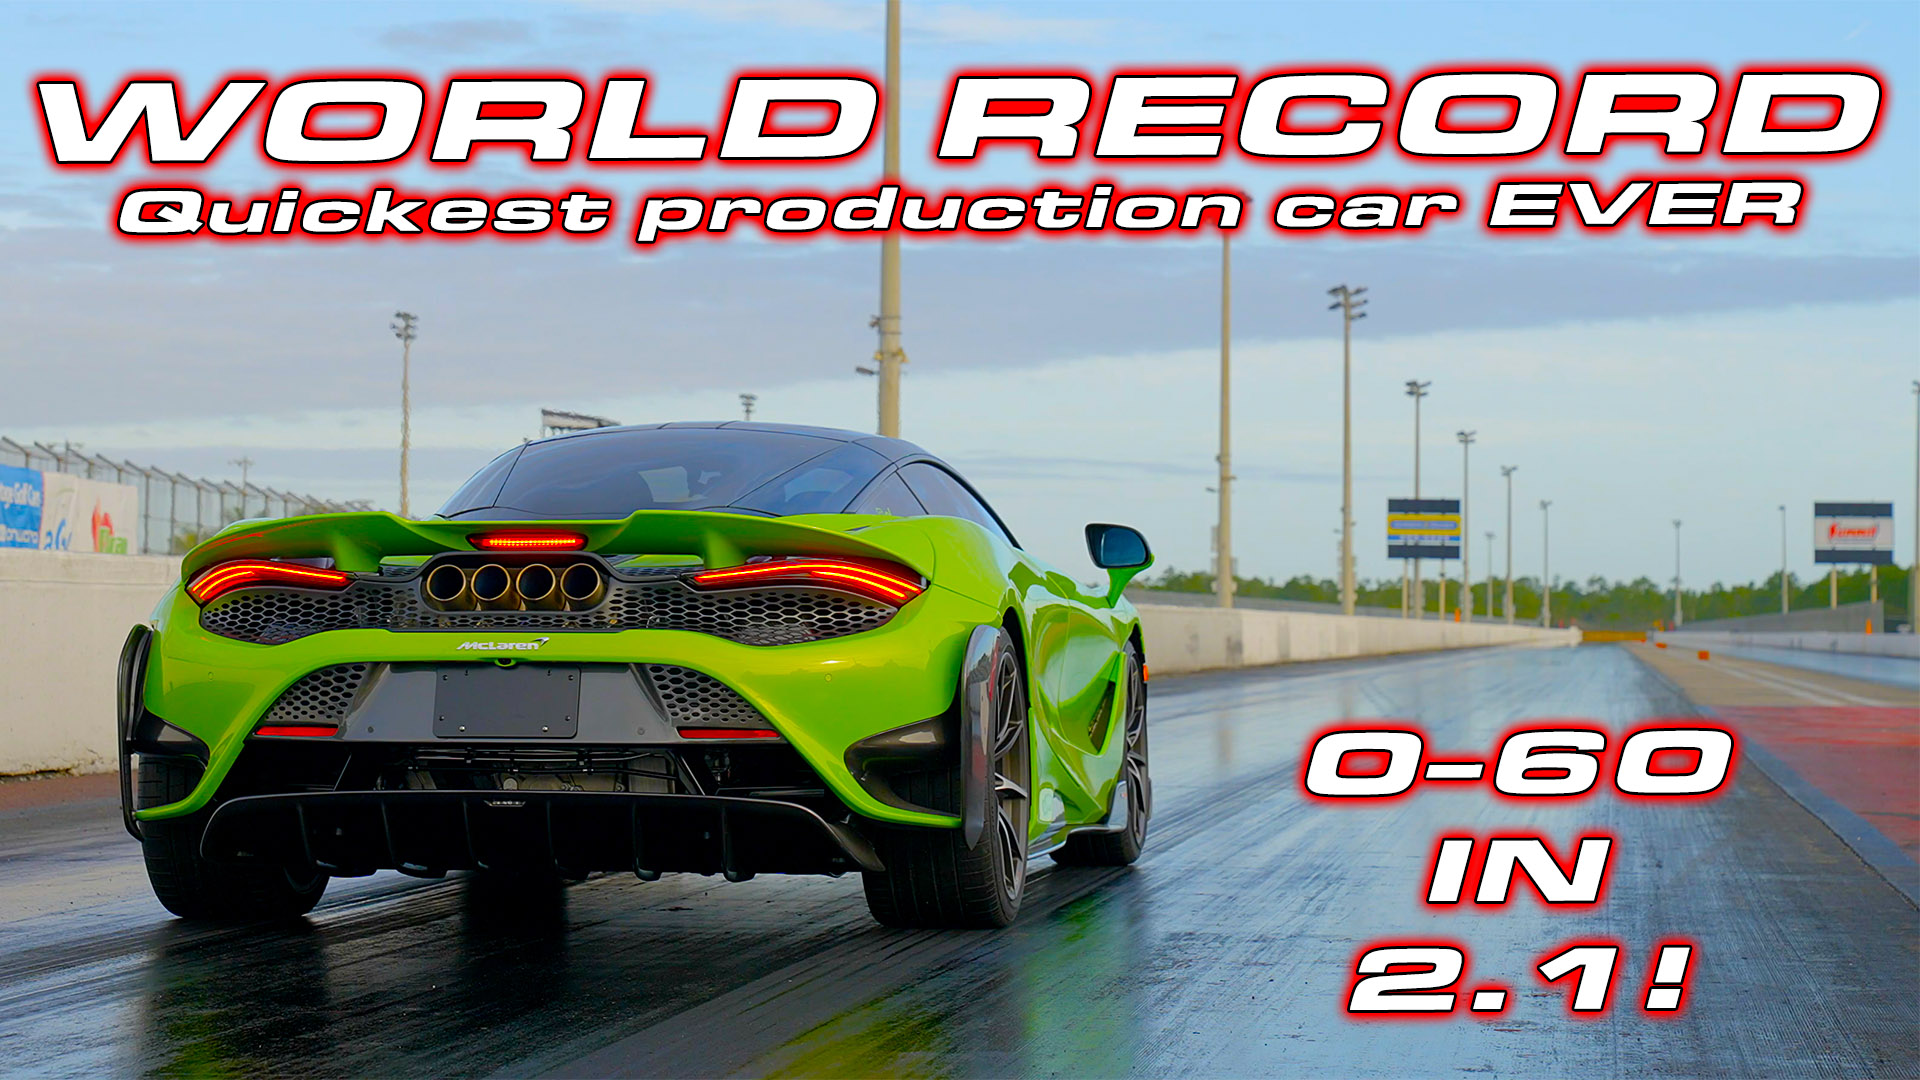 McLaren 765LT sets record for the world's quickest production car